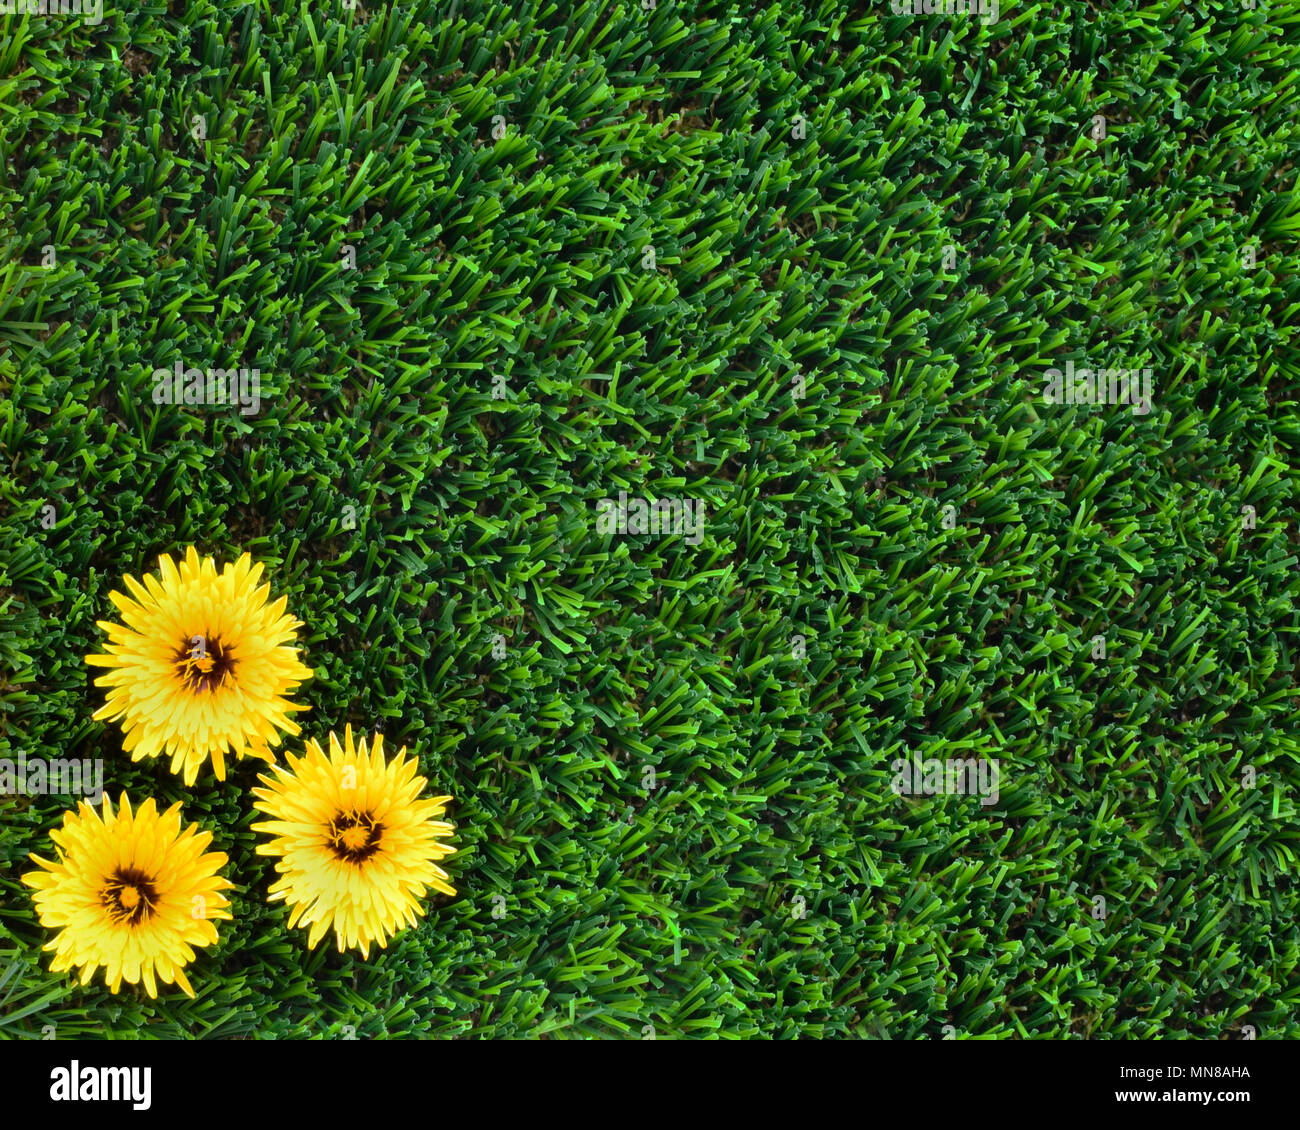 Copy space background for the concept of no weeds in the garden copy space background for the concept of no weeds in the garden pretty yellow flowers on artificial grass making room for text marketing and adverti mightylinksfo